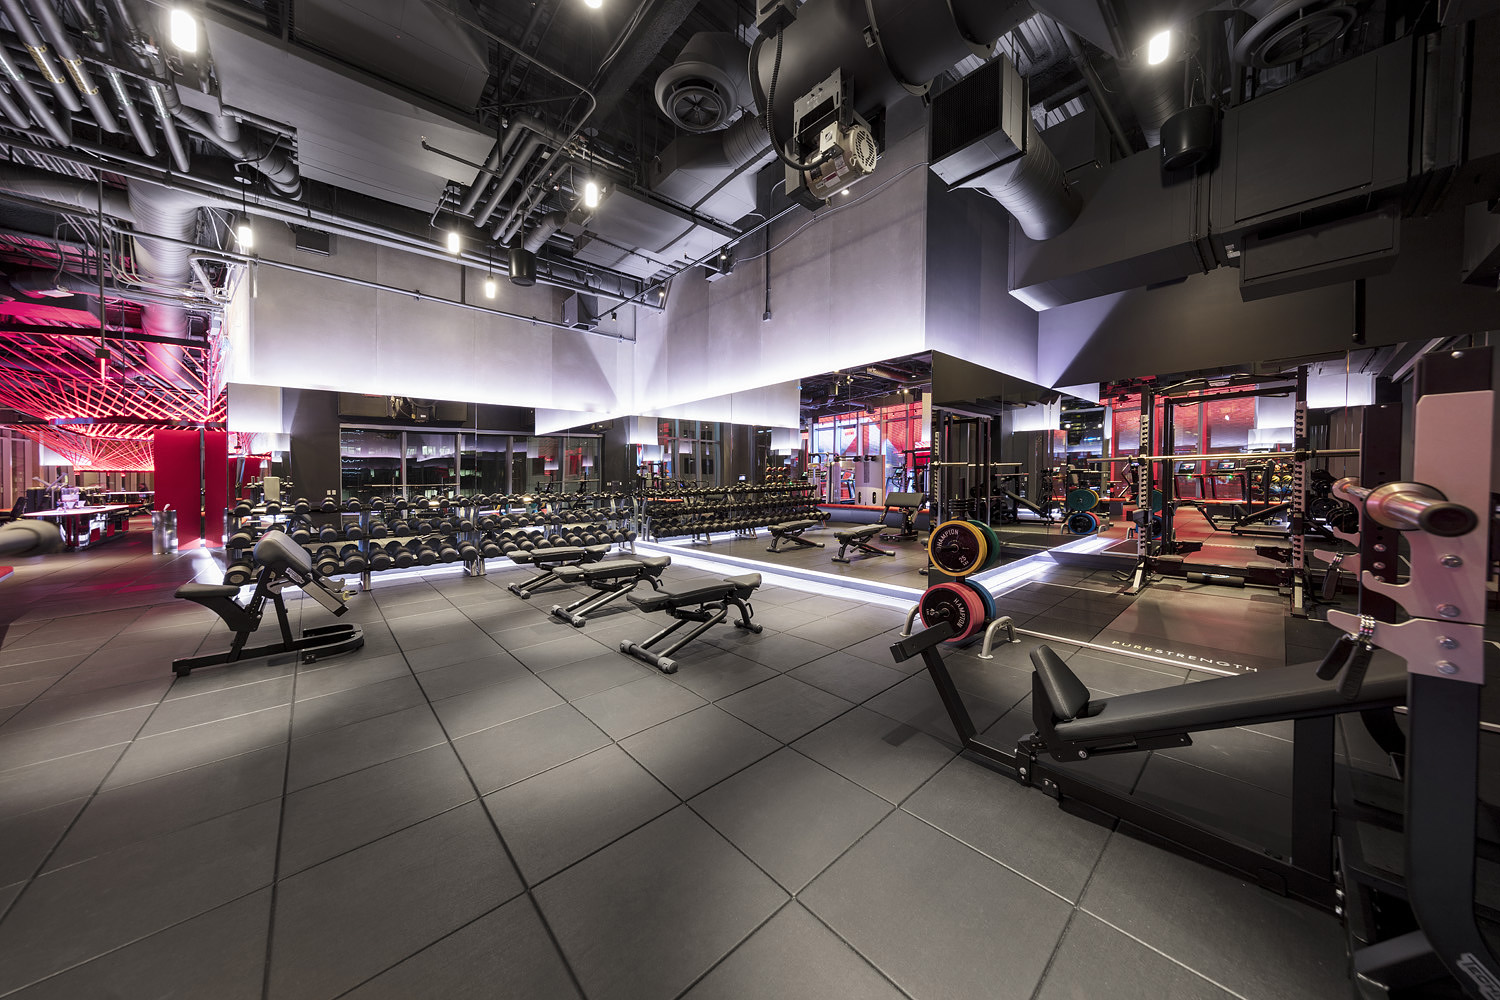 InterContinental LA Downtown_Attitude_Fitness_Center_Weight_Room_17-126_HR.jpg